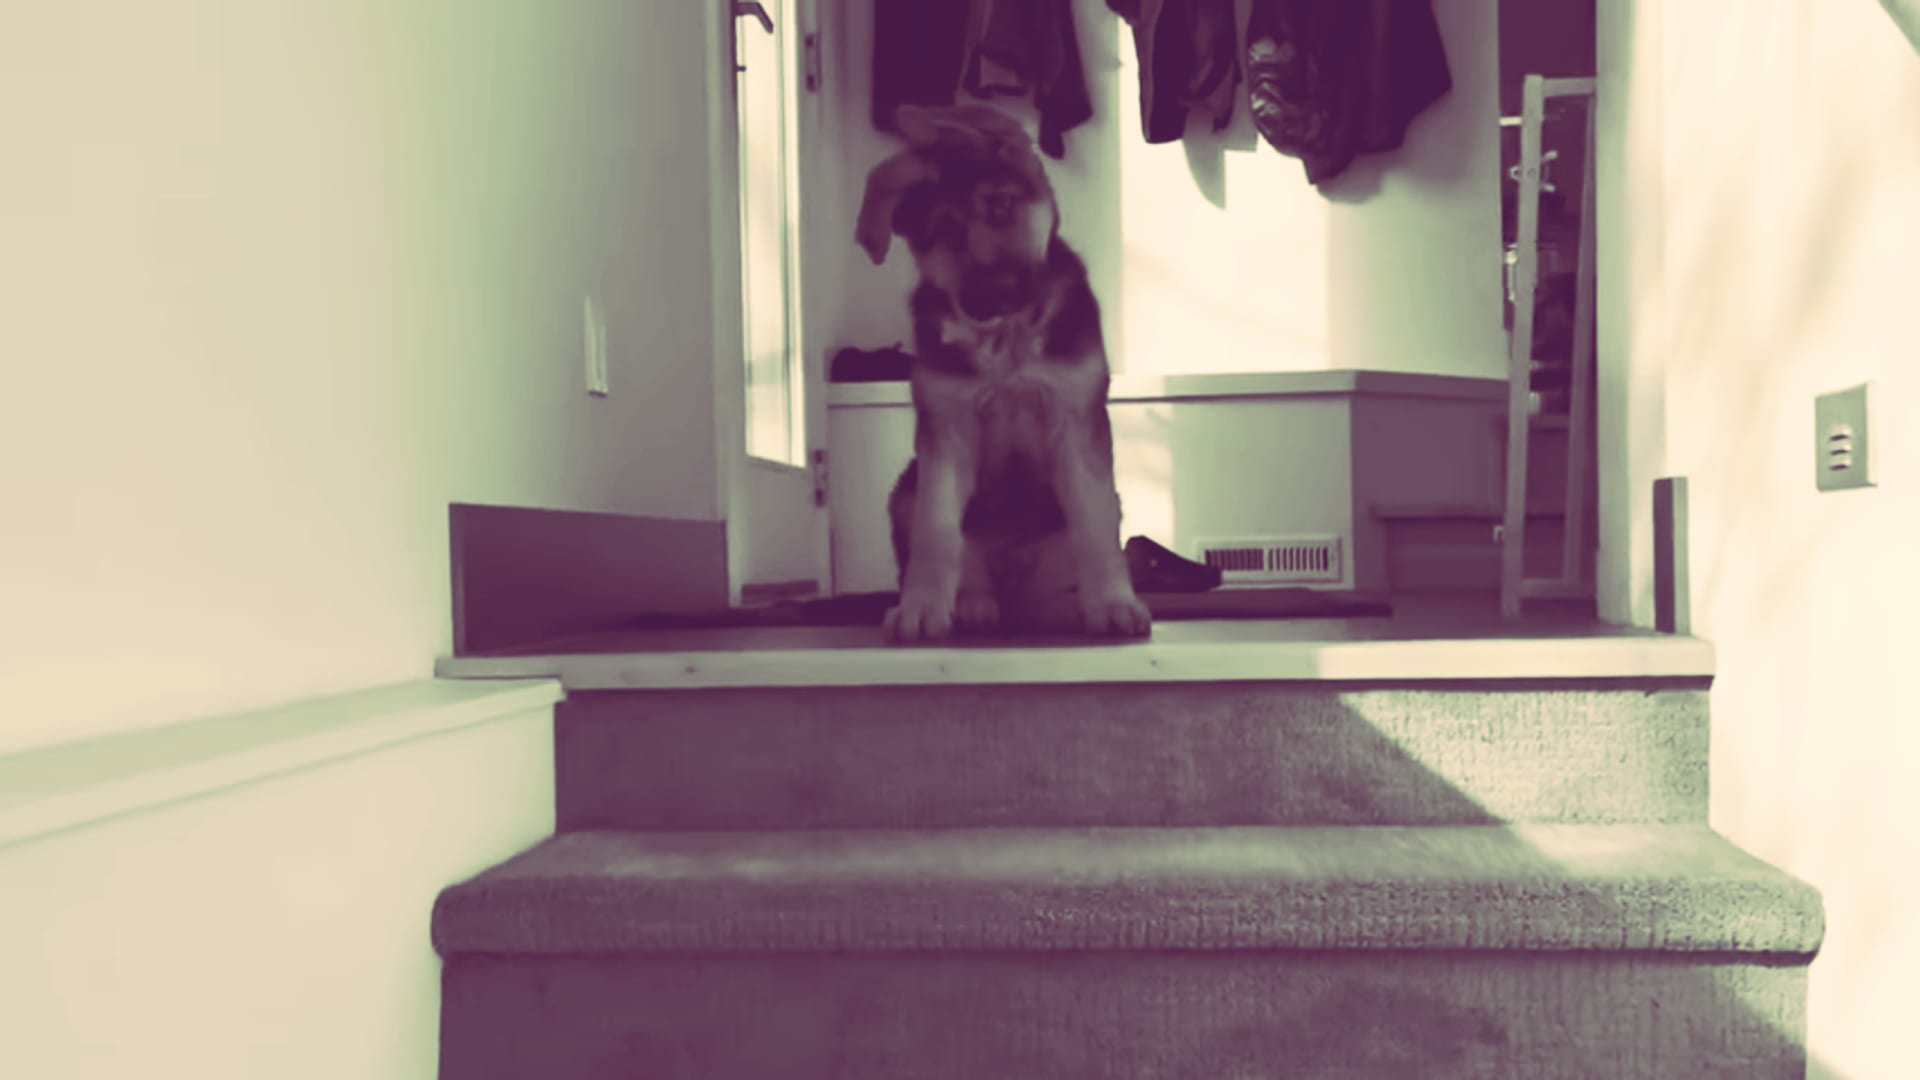 Are Stairs Bad for German Shepherd Puppies?